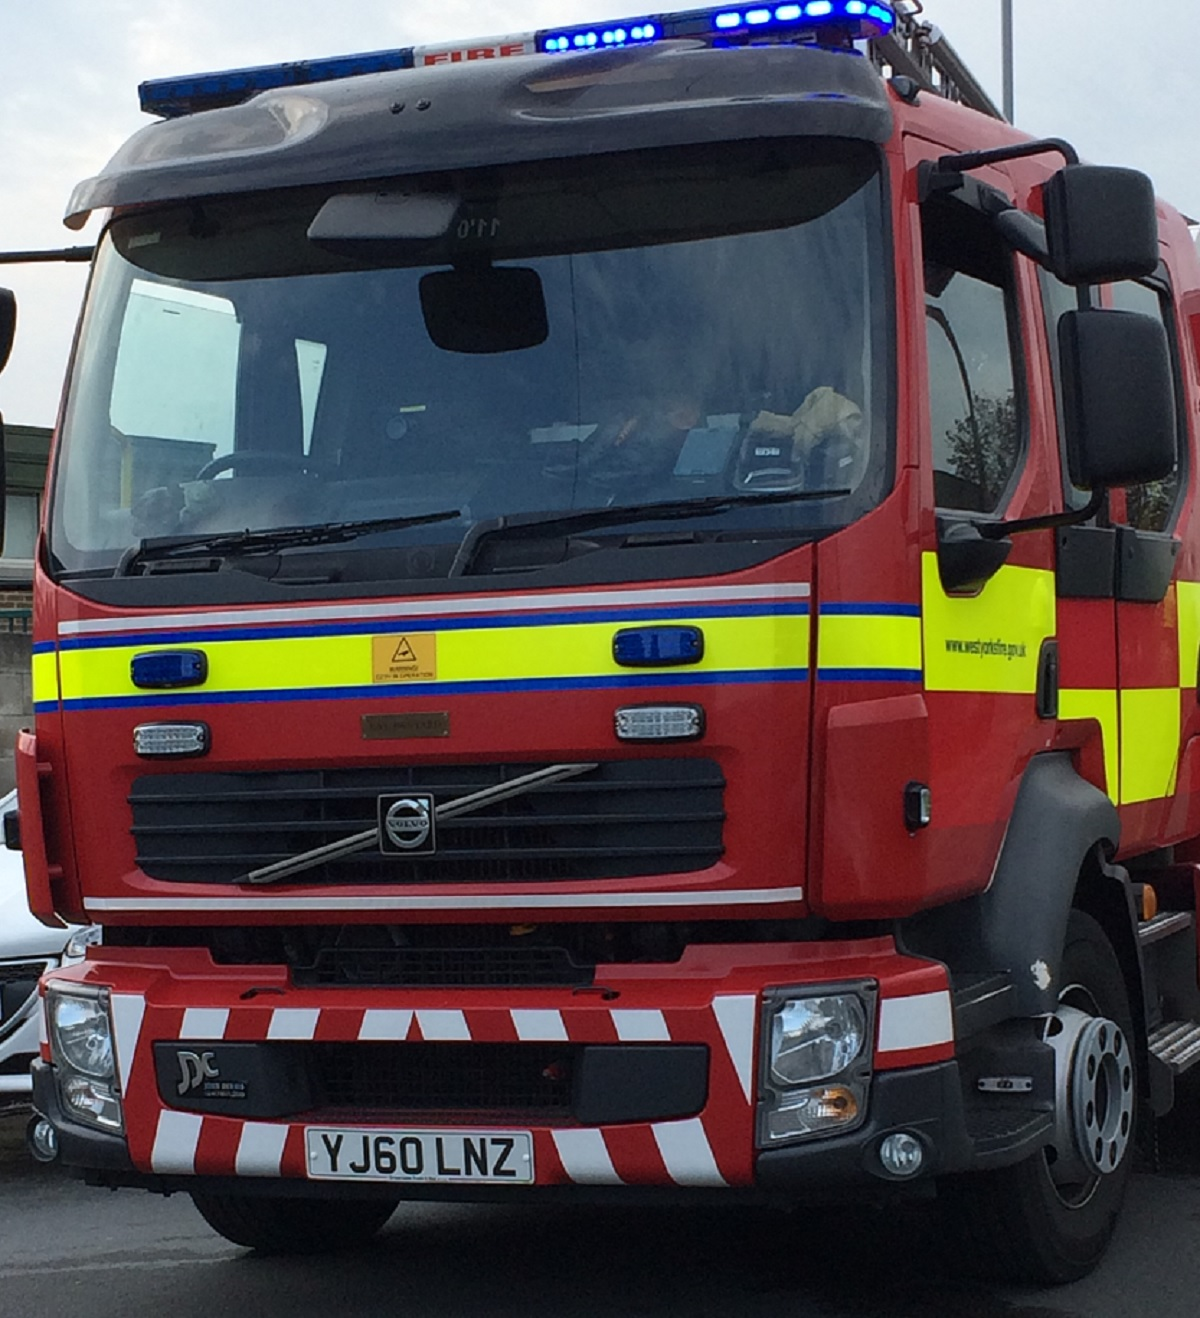 Fire crews from Otley, Rawdon, and Shipley were called to the incident in Maylea Drive